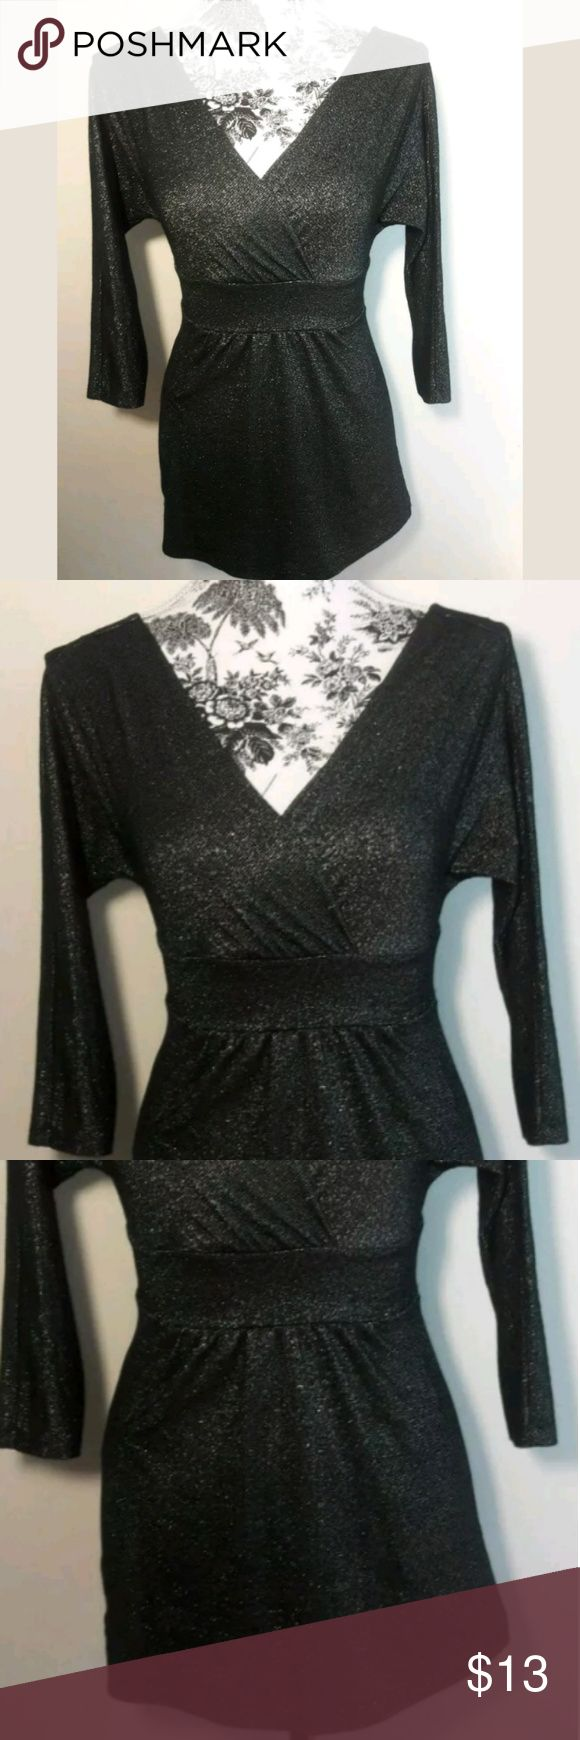 Express Shirt XS Black Silver Metallic Blouse Express  Womens Shirt Size XS Black W Silver Metallic Shimmer Empire Waist Blouse. Can be worn in and out of the office. Perfect for work or any special occasion. Simply Beautiful. A Must have!  Pre-owned in excellent condition.  Thank you for Looking & Sharing Happy Poshing😄 Express Tops Blouses